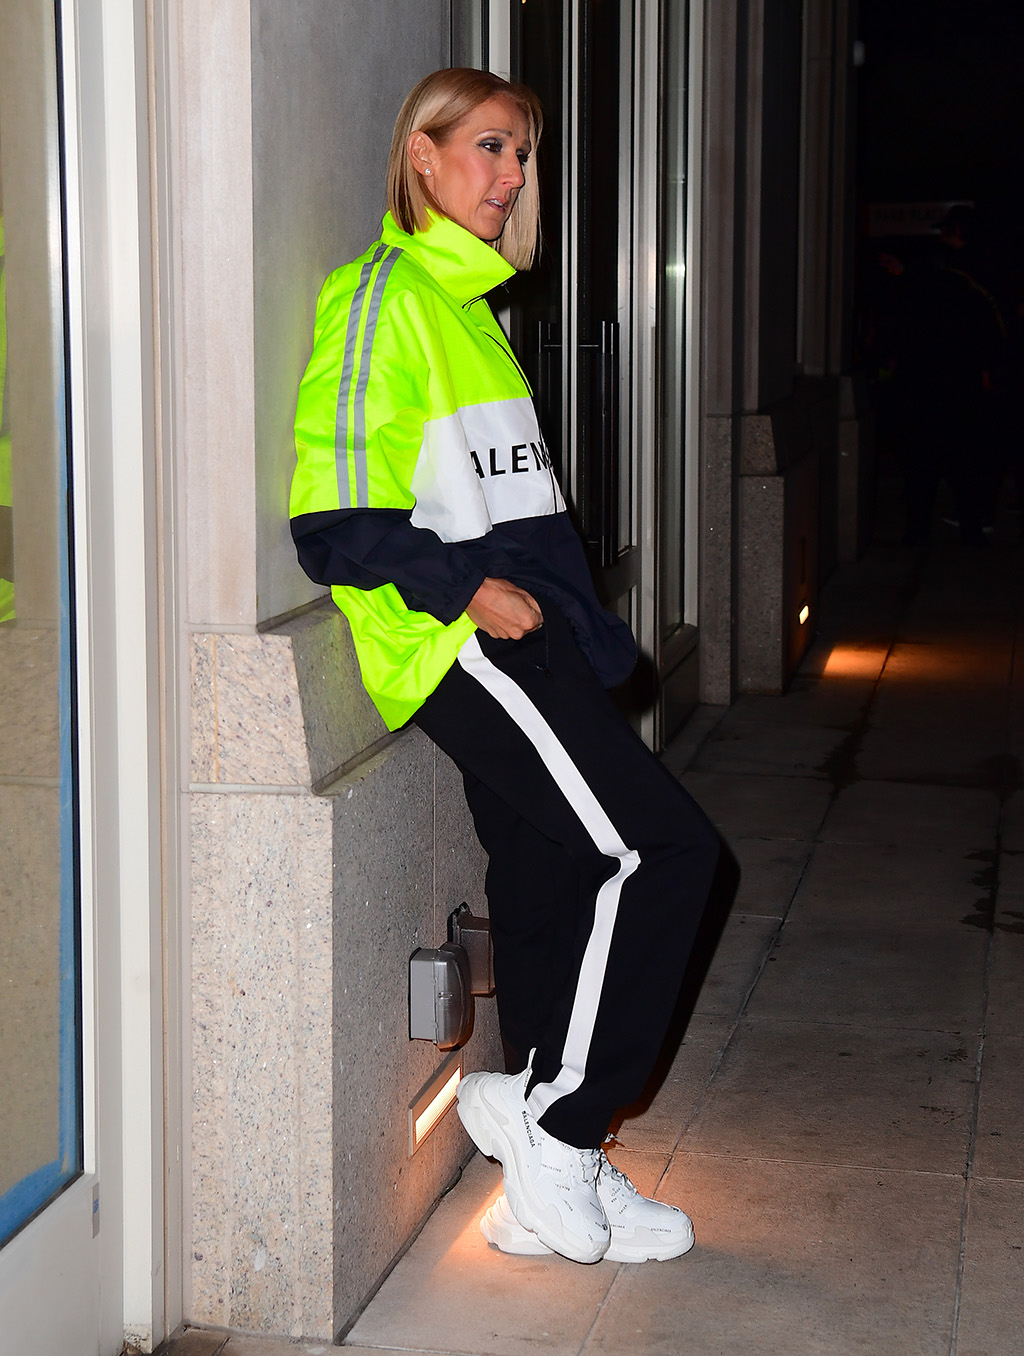 Celine Dion , balenciaga track suit, balenciaga triple s sneakers, was spotted looking youthful in a Neon Balenciaga Windbreaker as she headed back to her hotel following her 2nd NYC Concert. She wore head to toe Balenciaga, opting for a sporty look with the Men's jacket, and joggers with a chunky white trainer. She casually posed in an outdoor chair in the Hotel Garden, looking half her age.Pictured: Celine DionRef: SPL5153047 010320 NON-EXCLUSIVEPicture by: DIGGZY / SplashNews.comSplash News and PicturesLos Angeles: 310-821-2666New York: 212-619-2666London: +44 (0)20 7644 7656Berlin: +49 175 3764 166photodesk@splashnews.comWorld Rights, No Portugal Rights